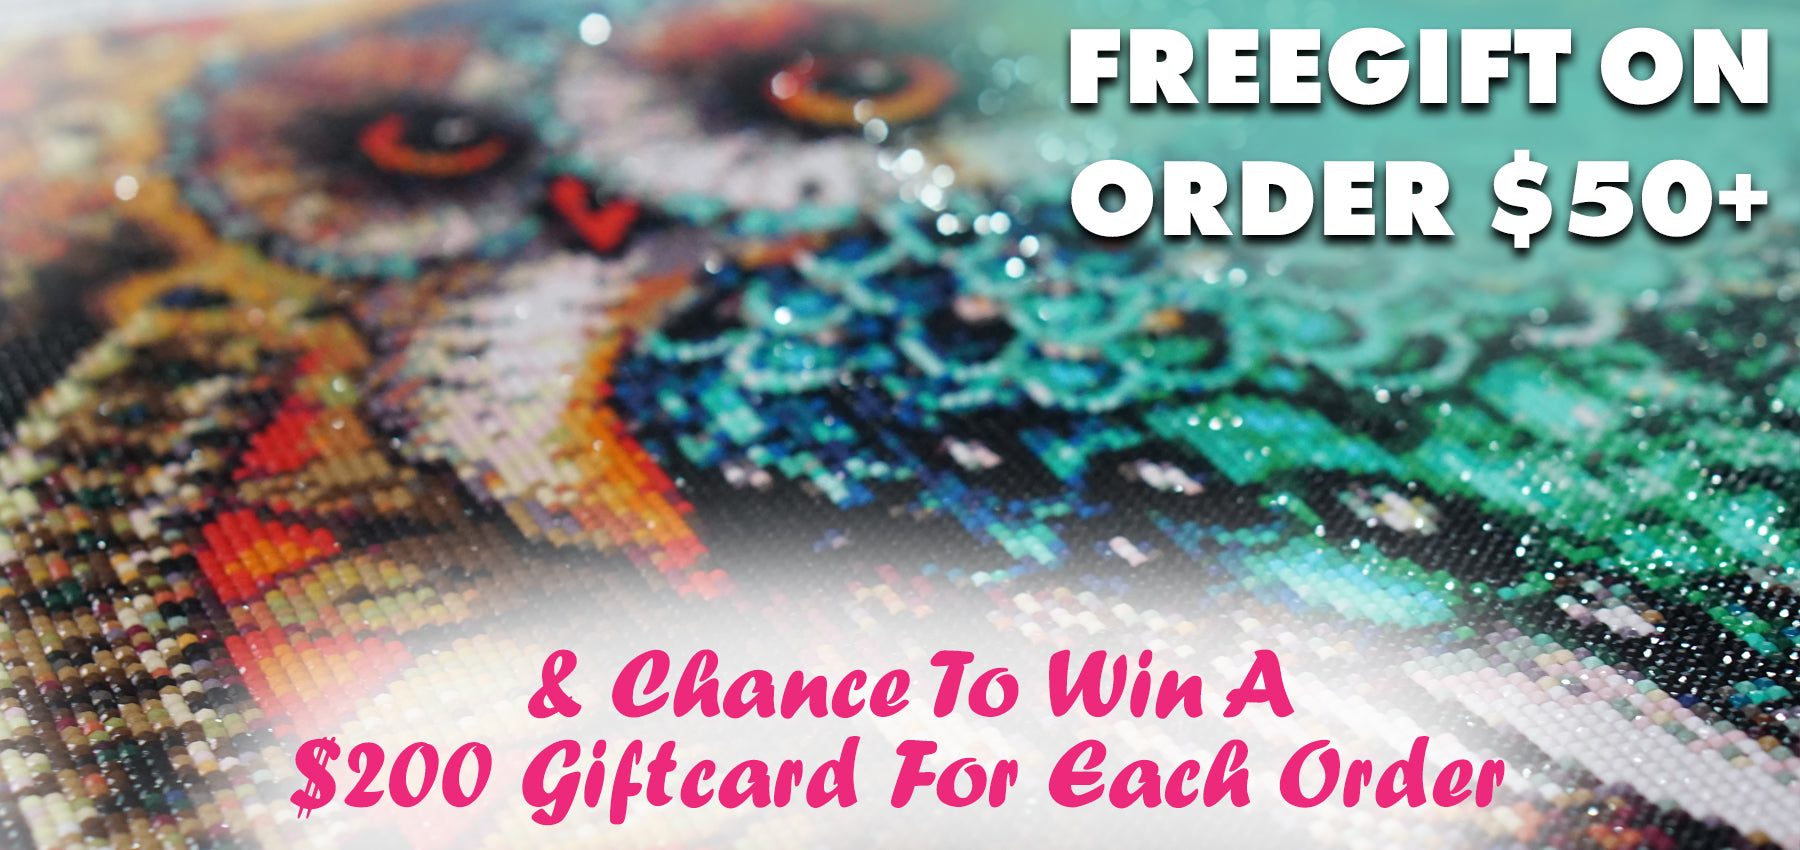 Free gift on order $50+ and chance to win $200 gift card